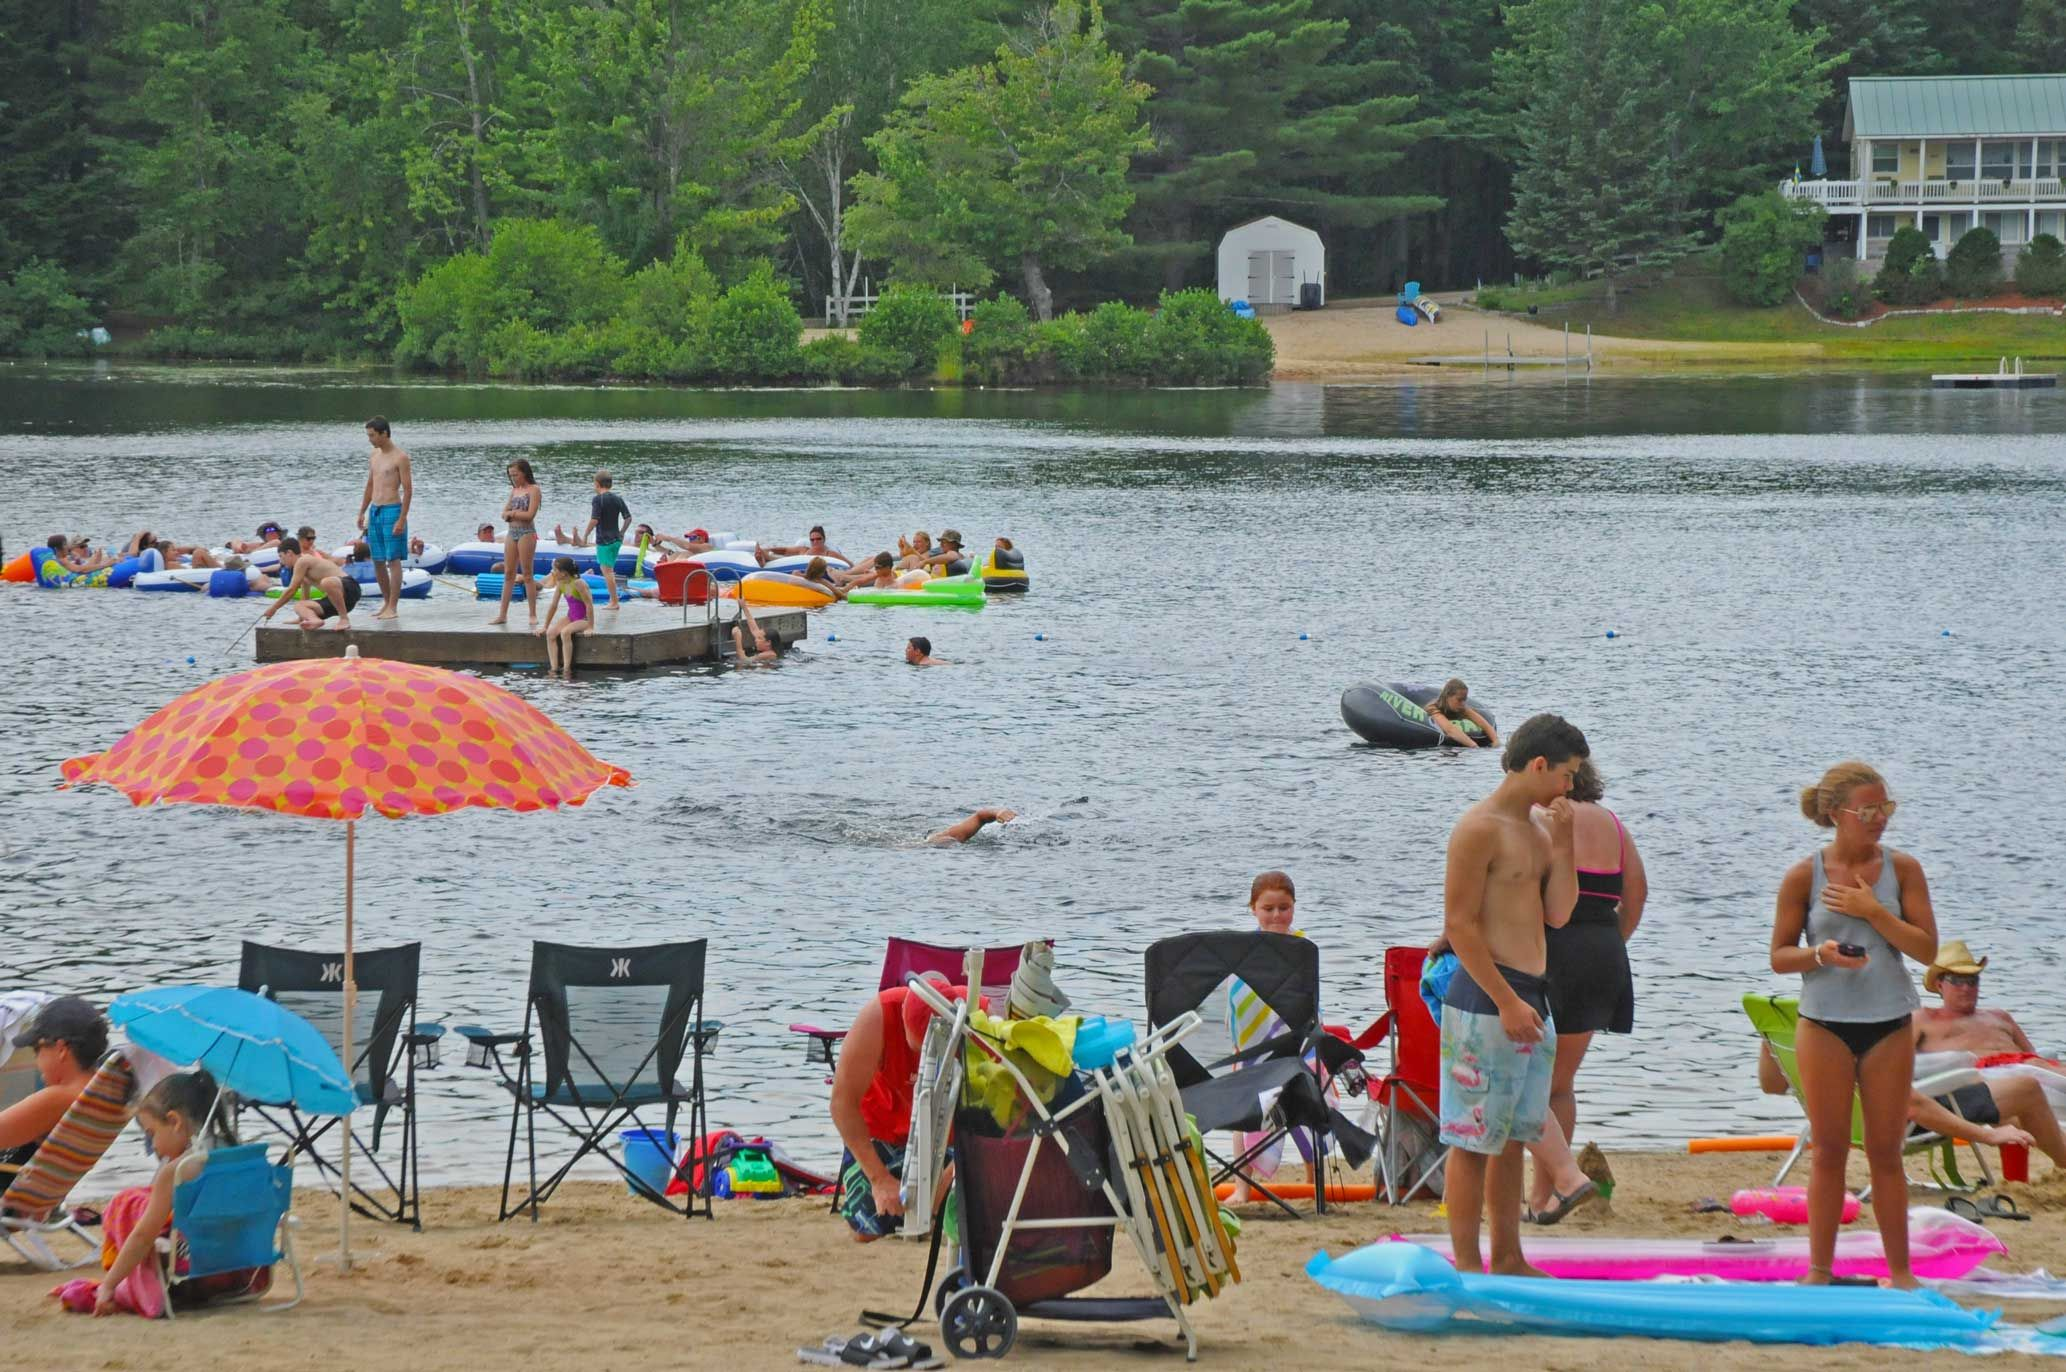 Summer Scene At Danforth Bay S Brookside Beach On Ossipee Lake In The White Mountains Of New Hampshire Premiere Camping In Ossipee Lake Summer Scenes Ossipee